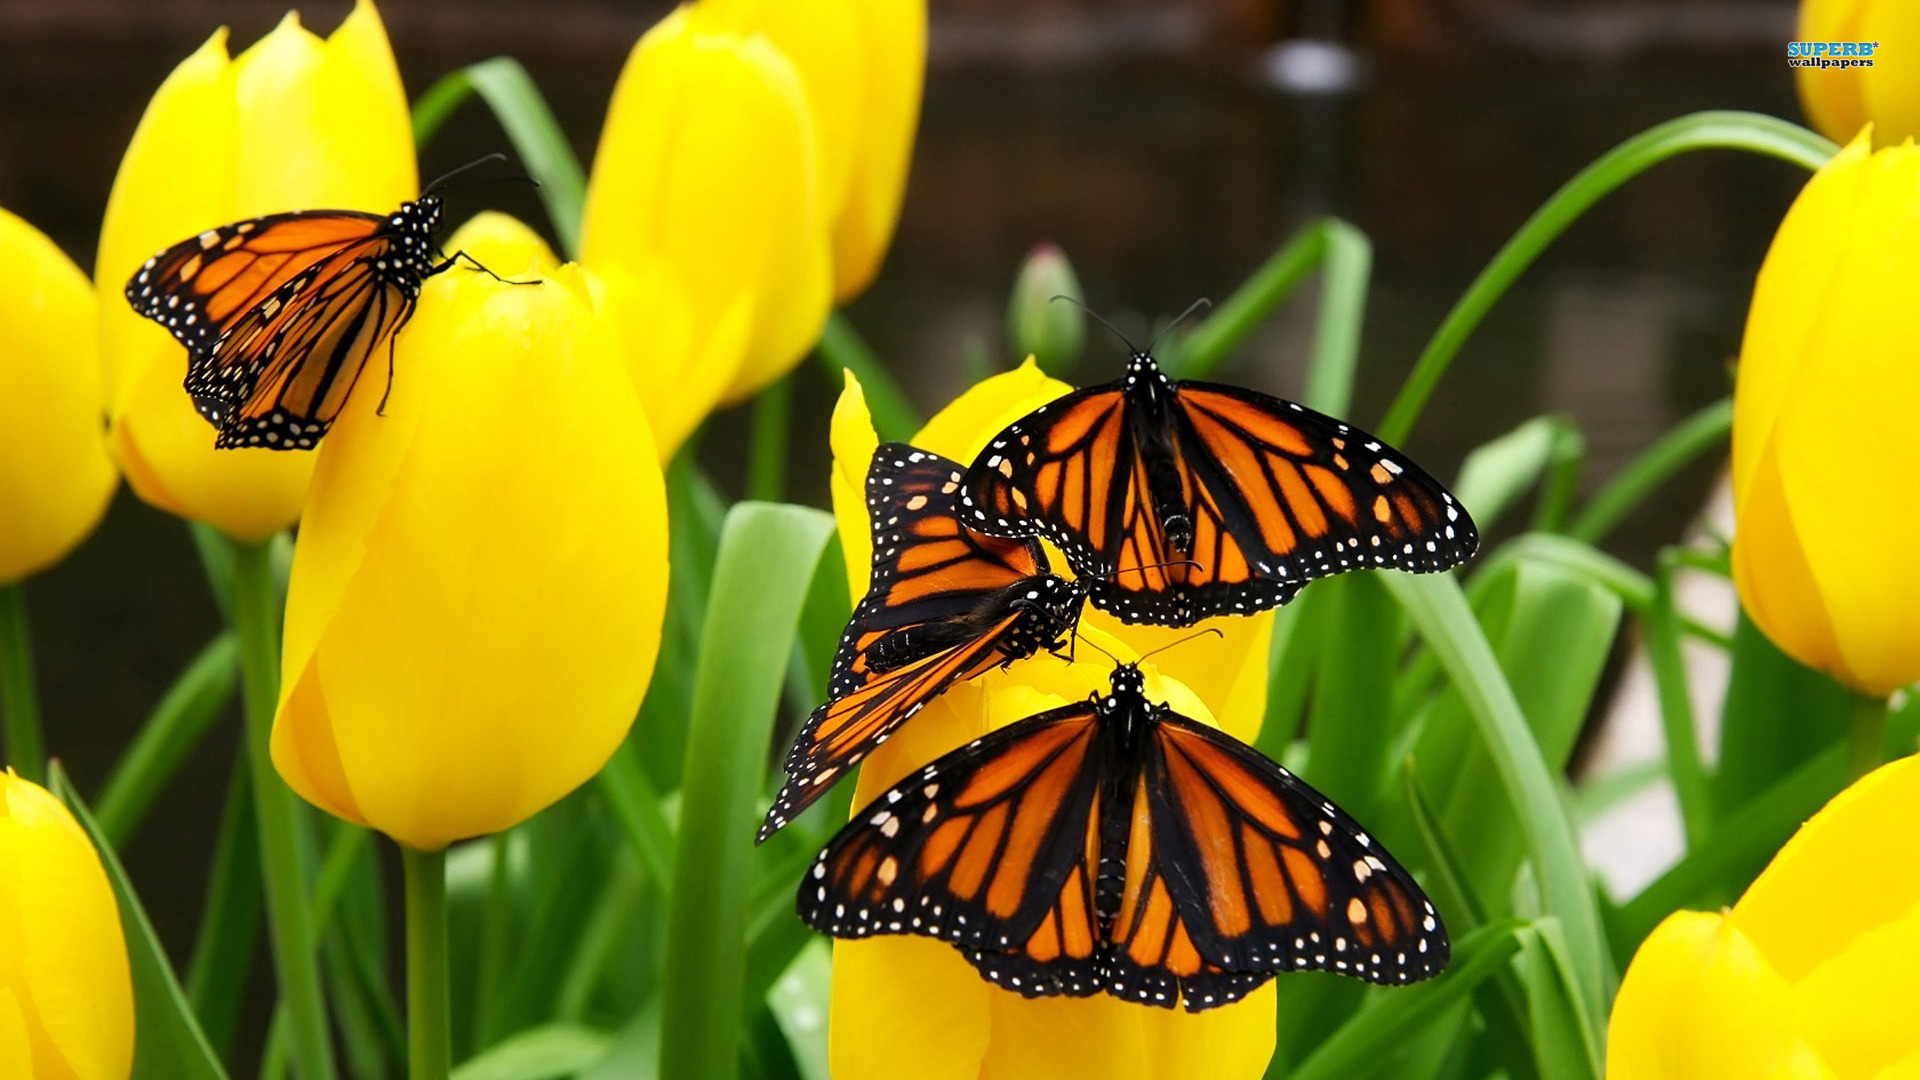 Monarch Butterflies Wallpaper Desktop Butterfly Butterflies Monarch 1920x1080